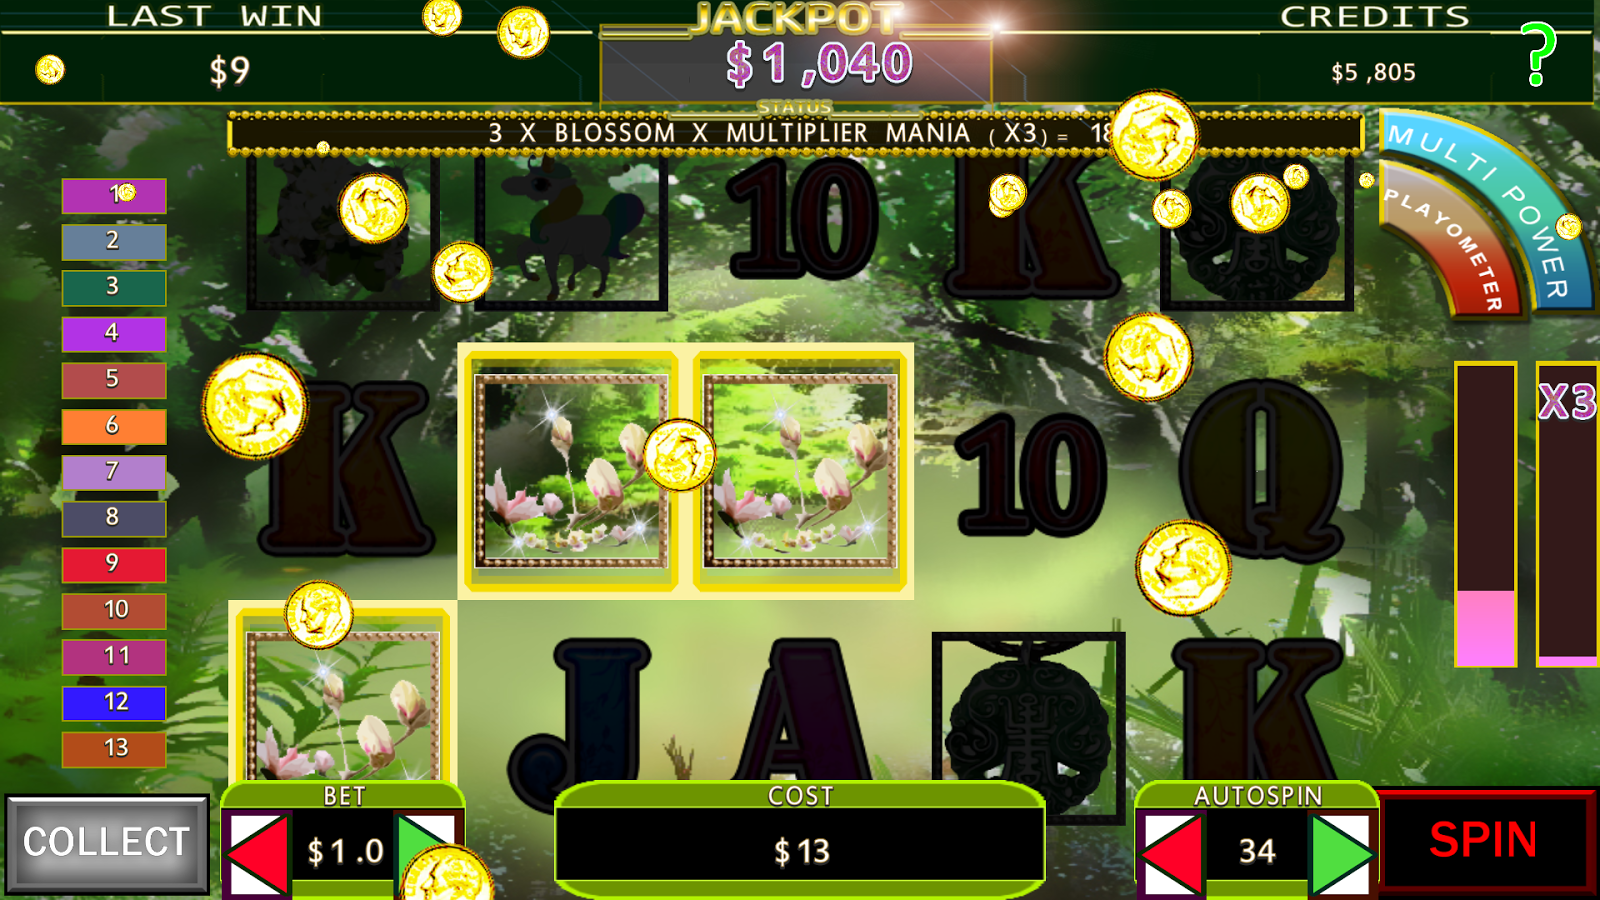 Land of Unicorn Slot Machine - Play Now with No Downloads